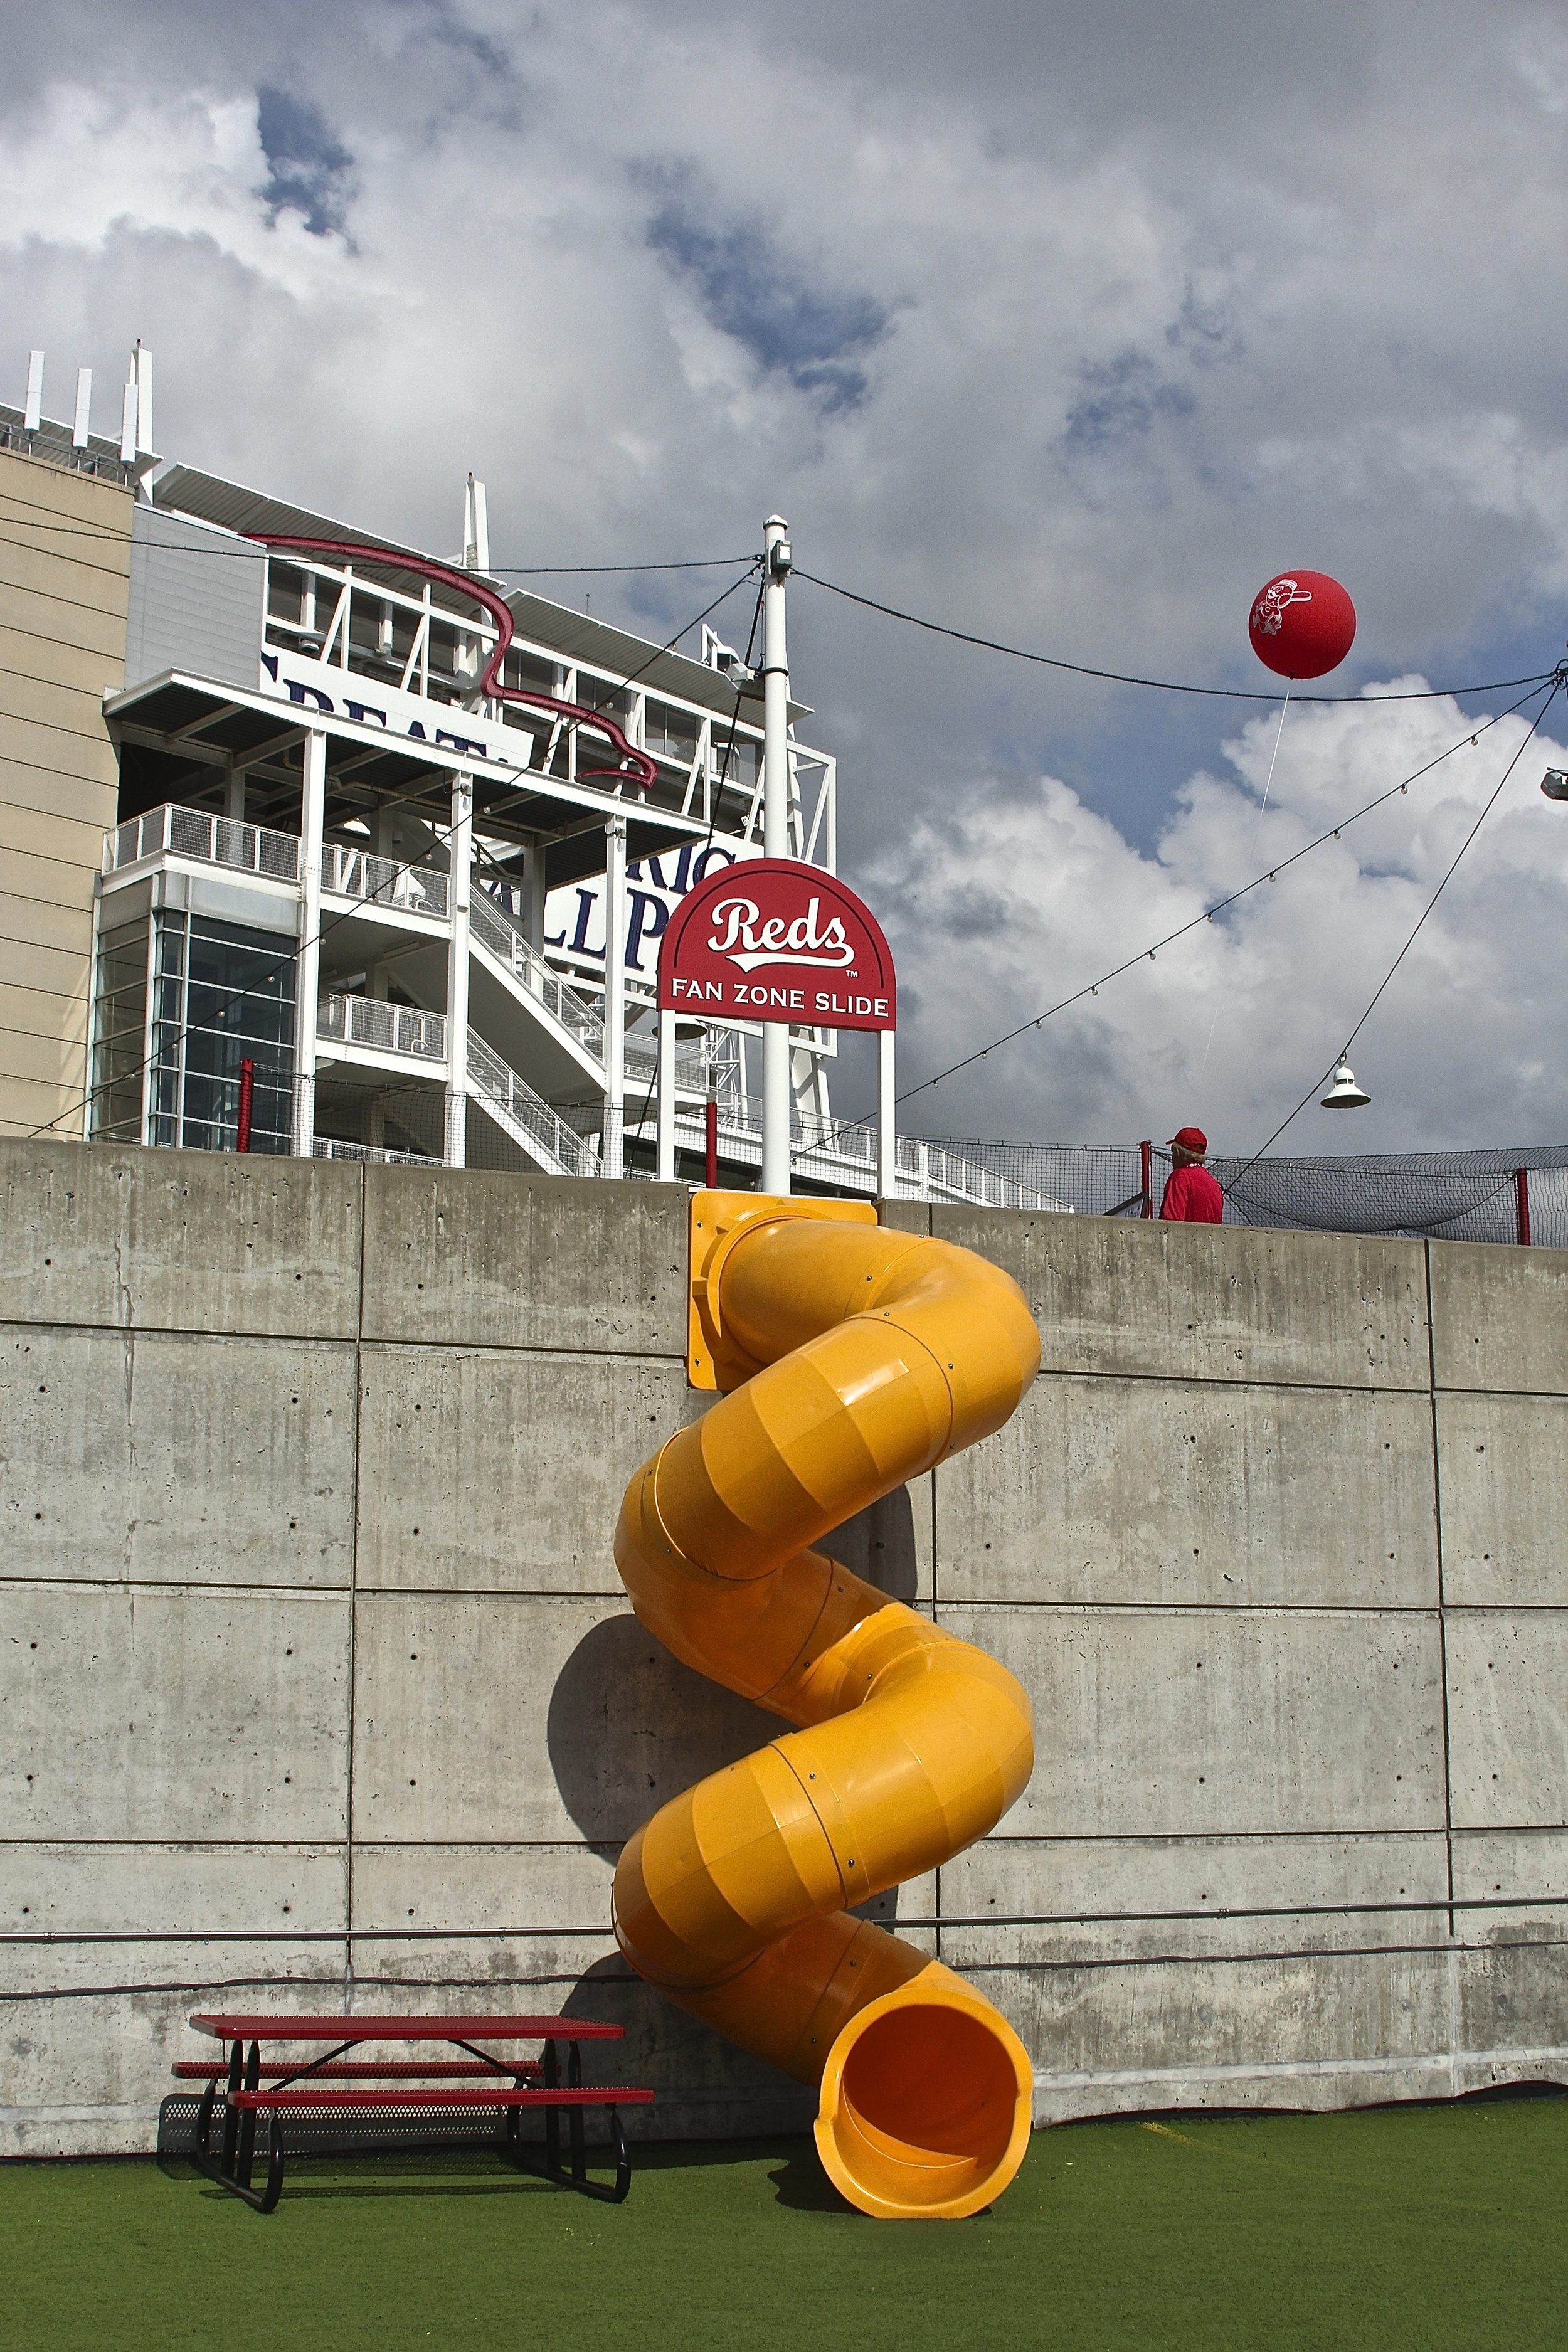 Awesome slide down to the batting cages